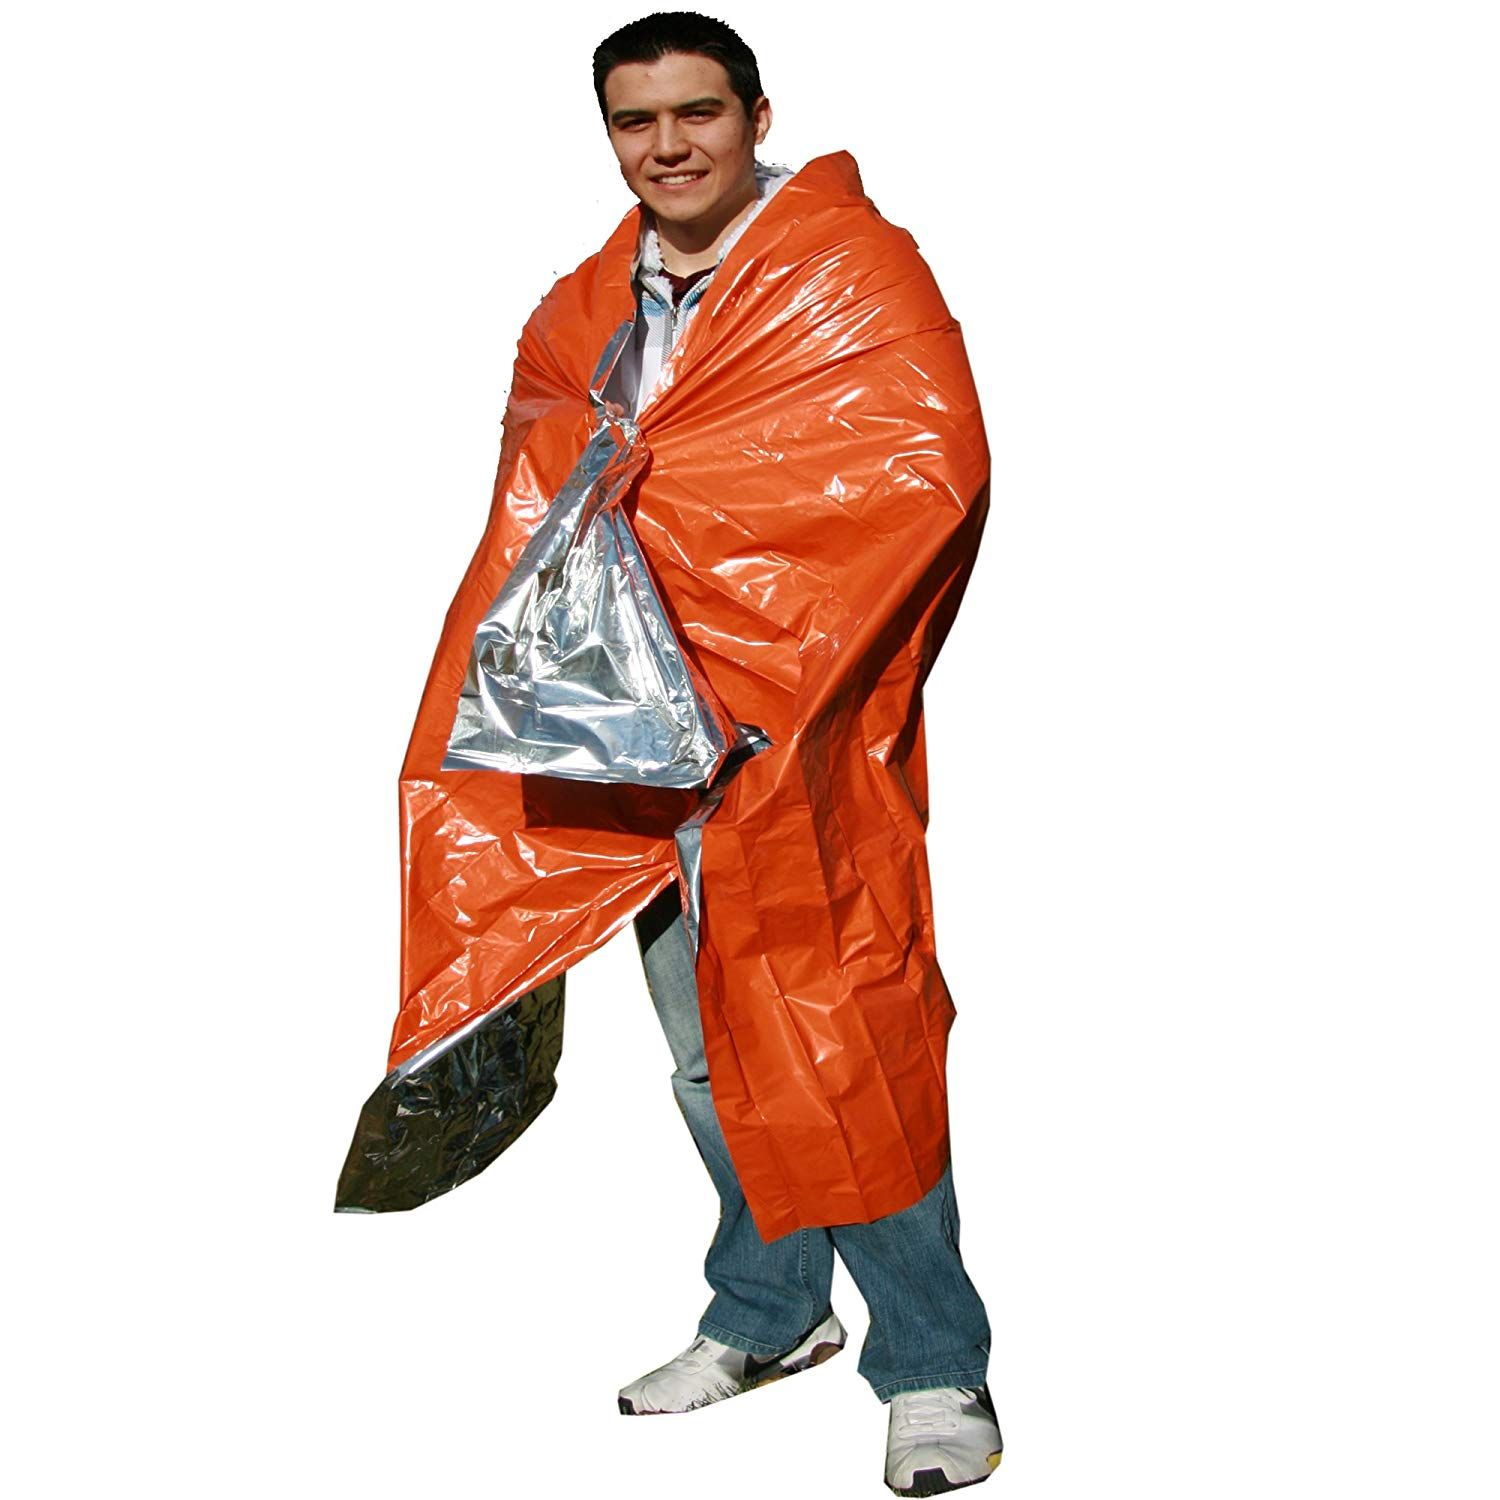 Emergency Zone ThermaSave Reversible Emergency Reflective